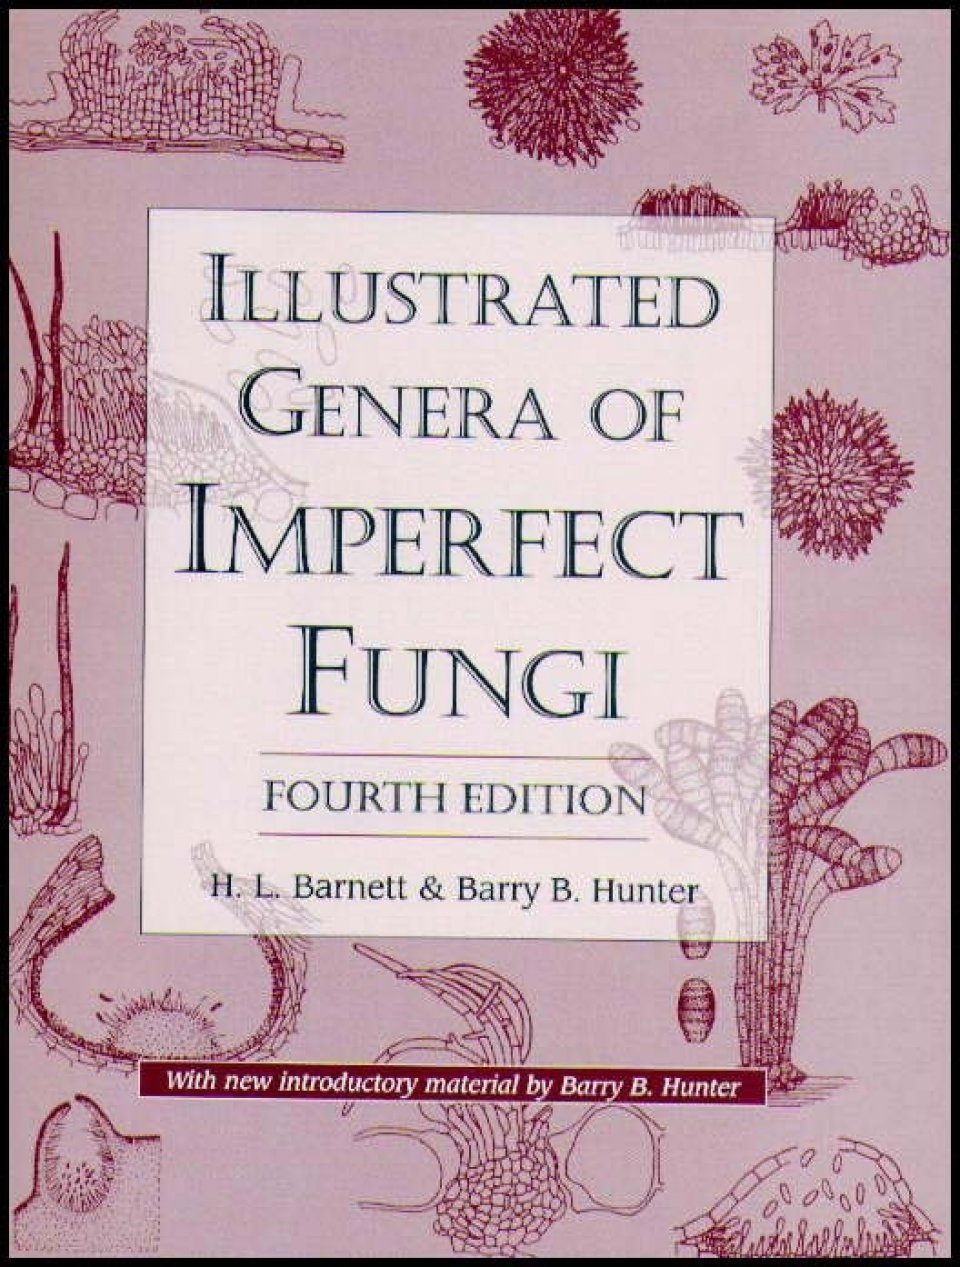 Illustrated Genera of Imperfect Fungi